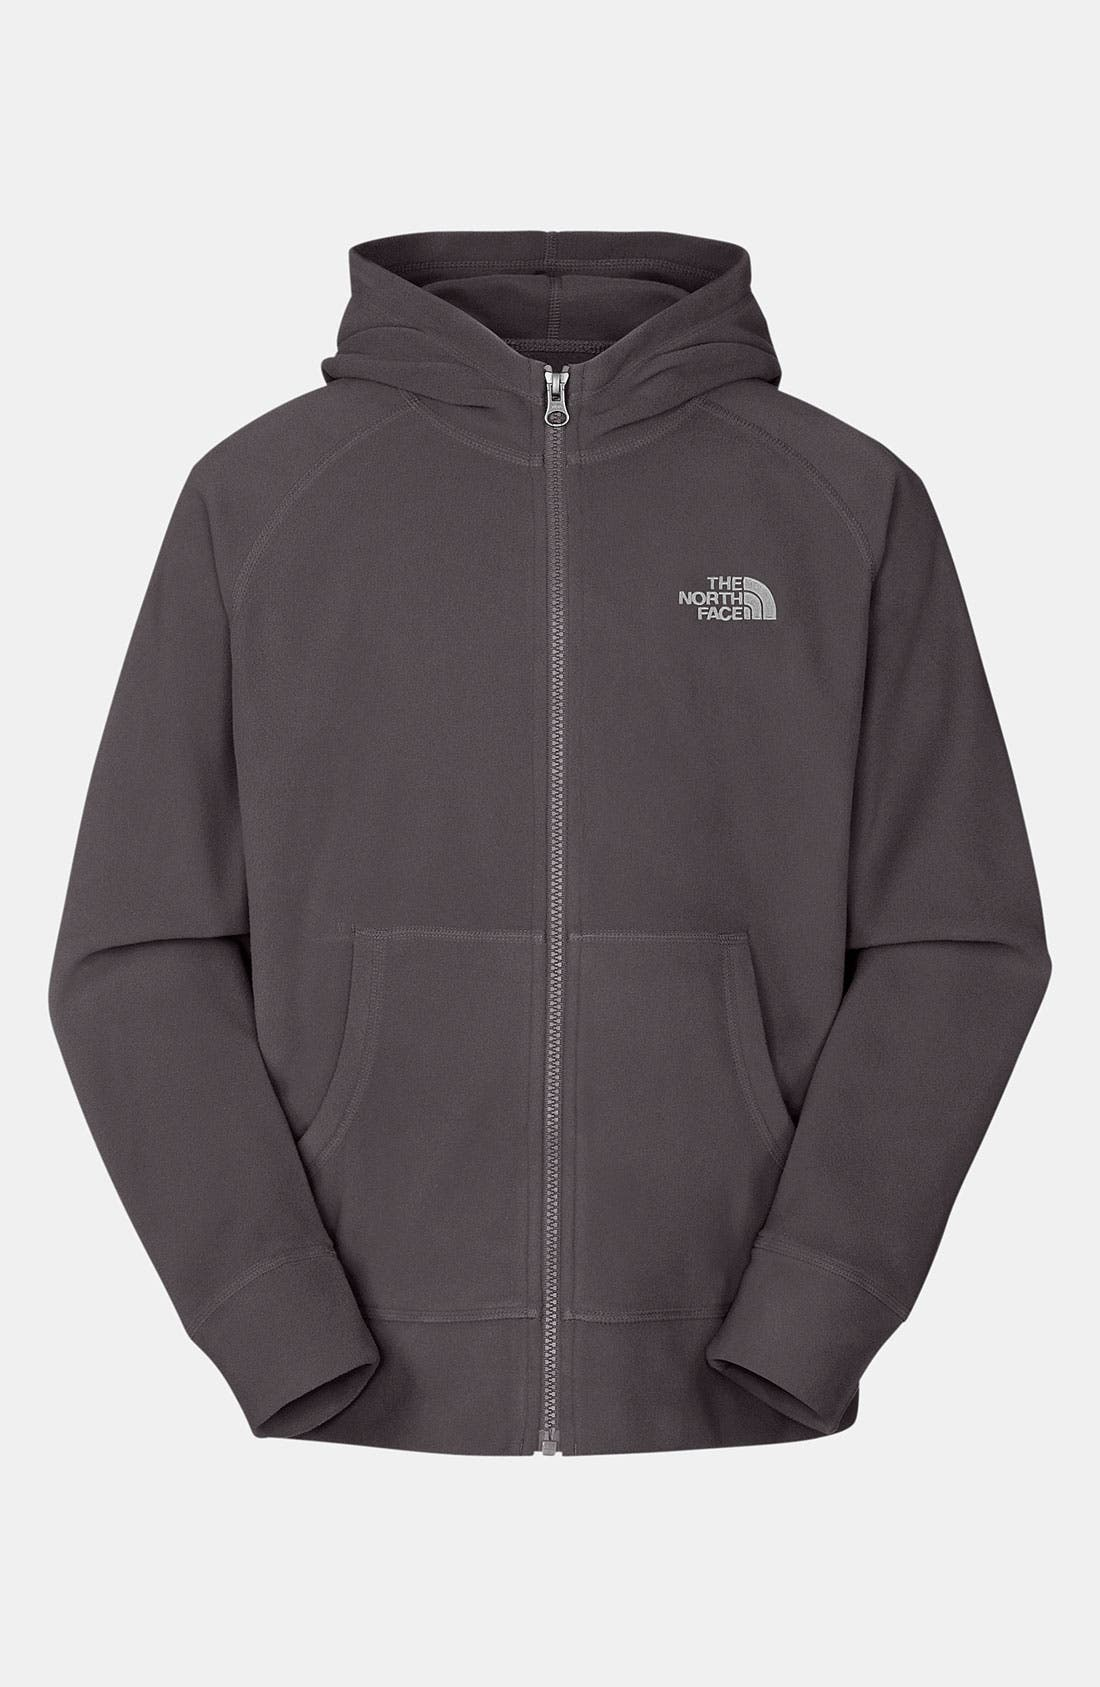 Main Image - The North Face 'Glacier' Fleece Hoodie (Little Boys)